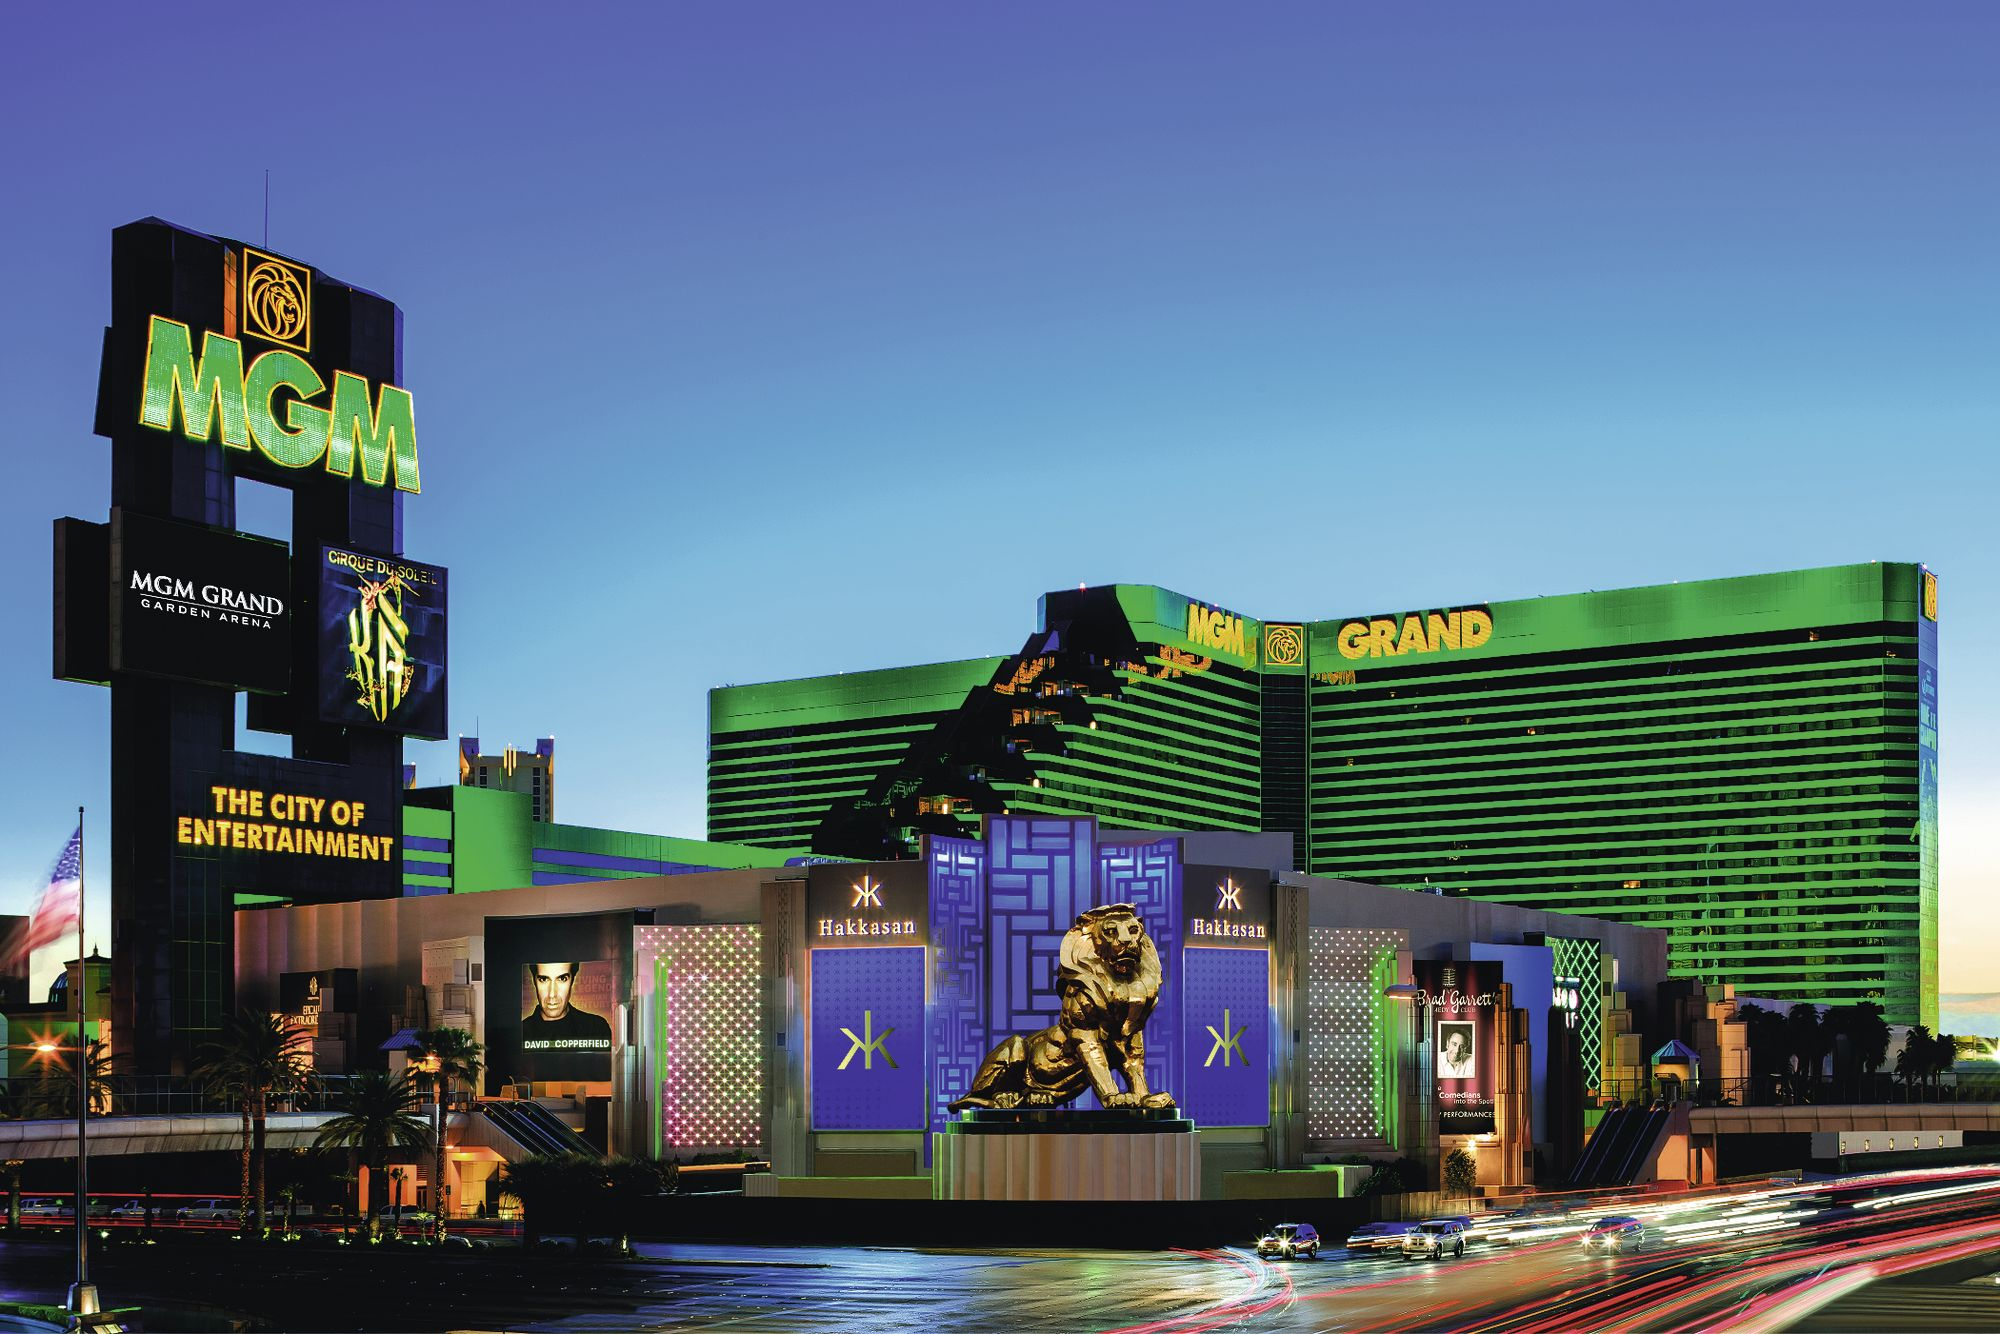 New MGM Grand Welcomes Staffing World